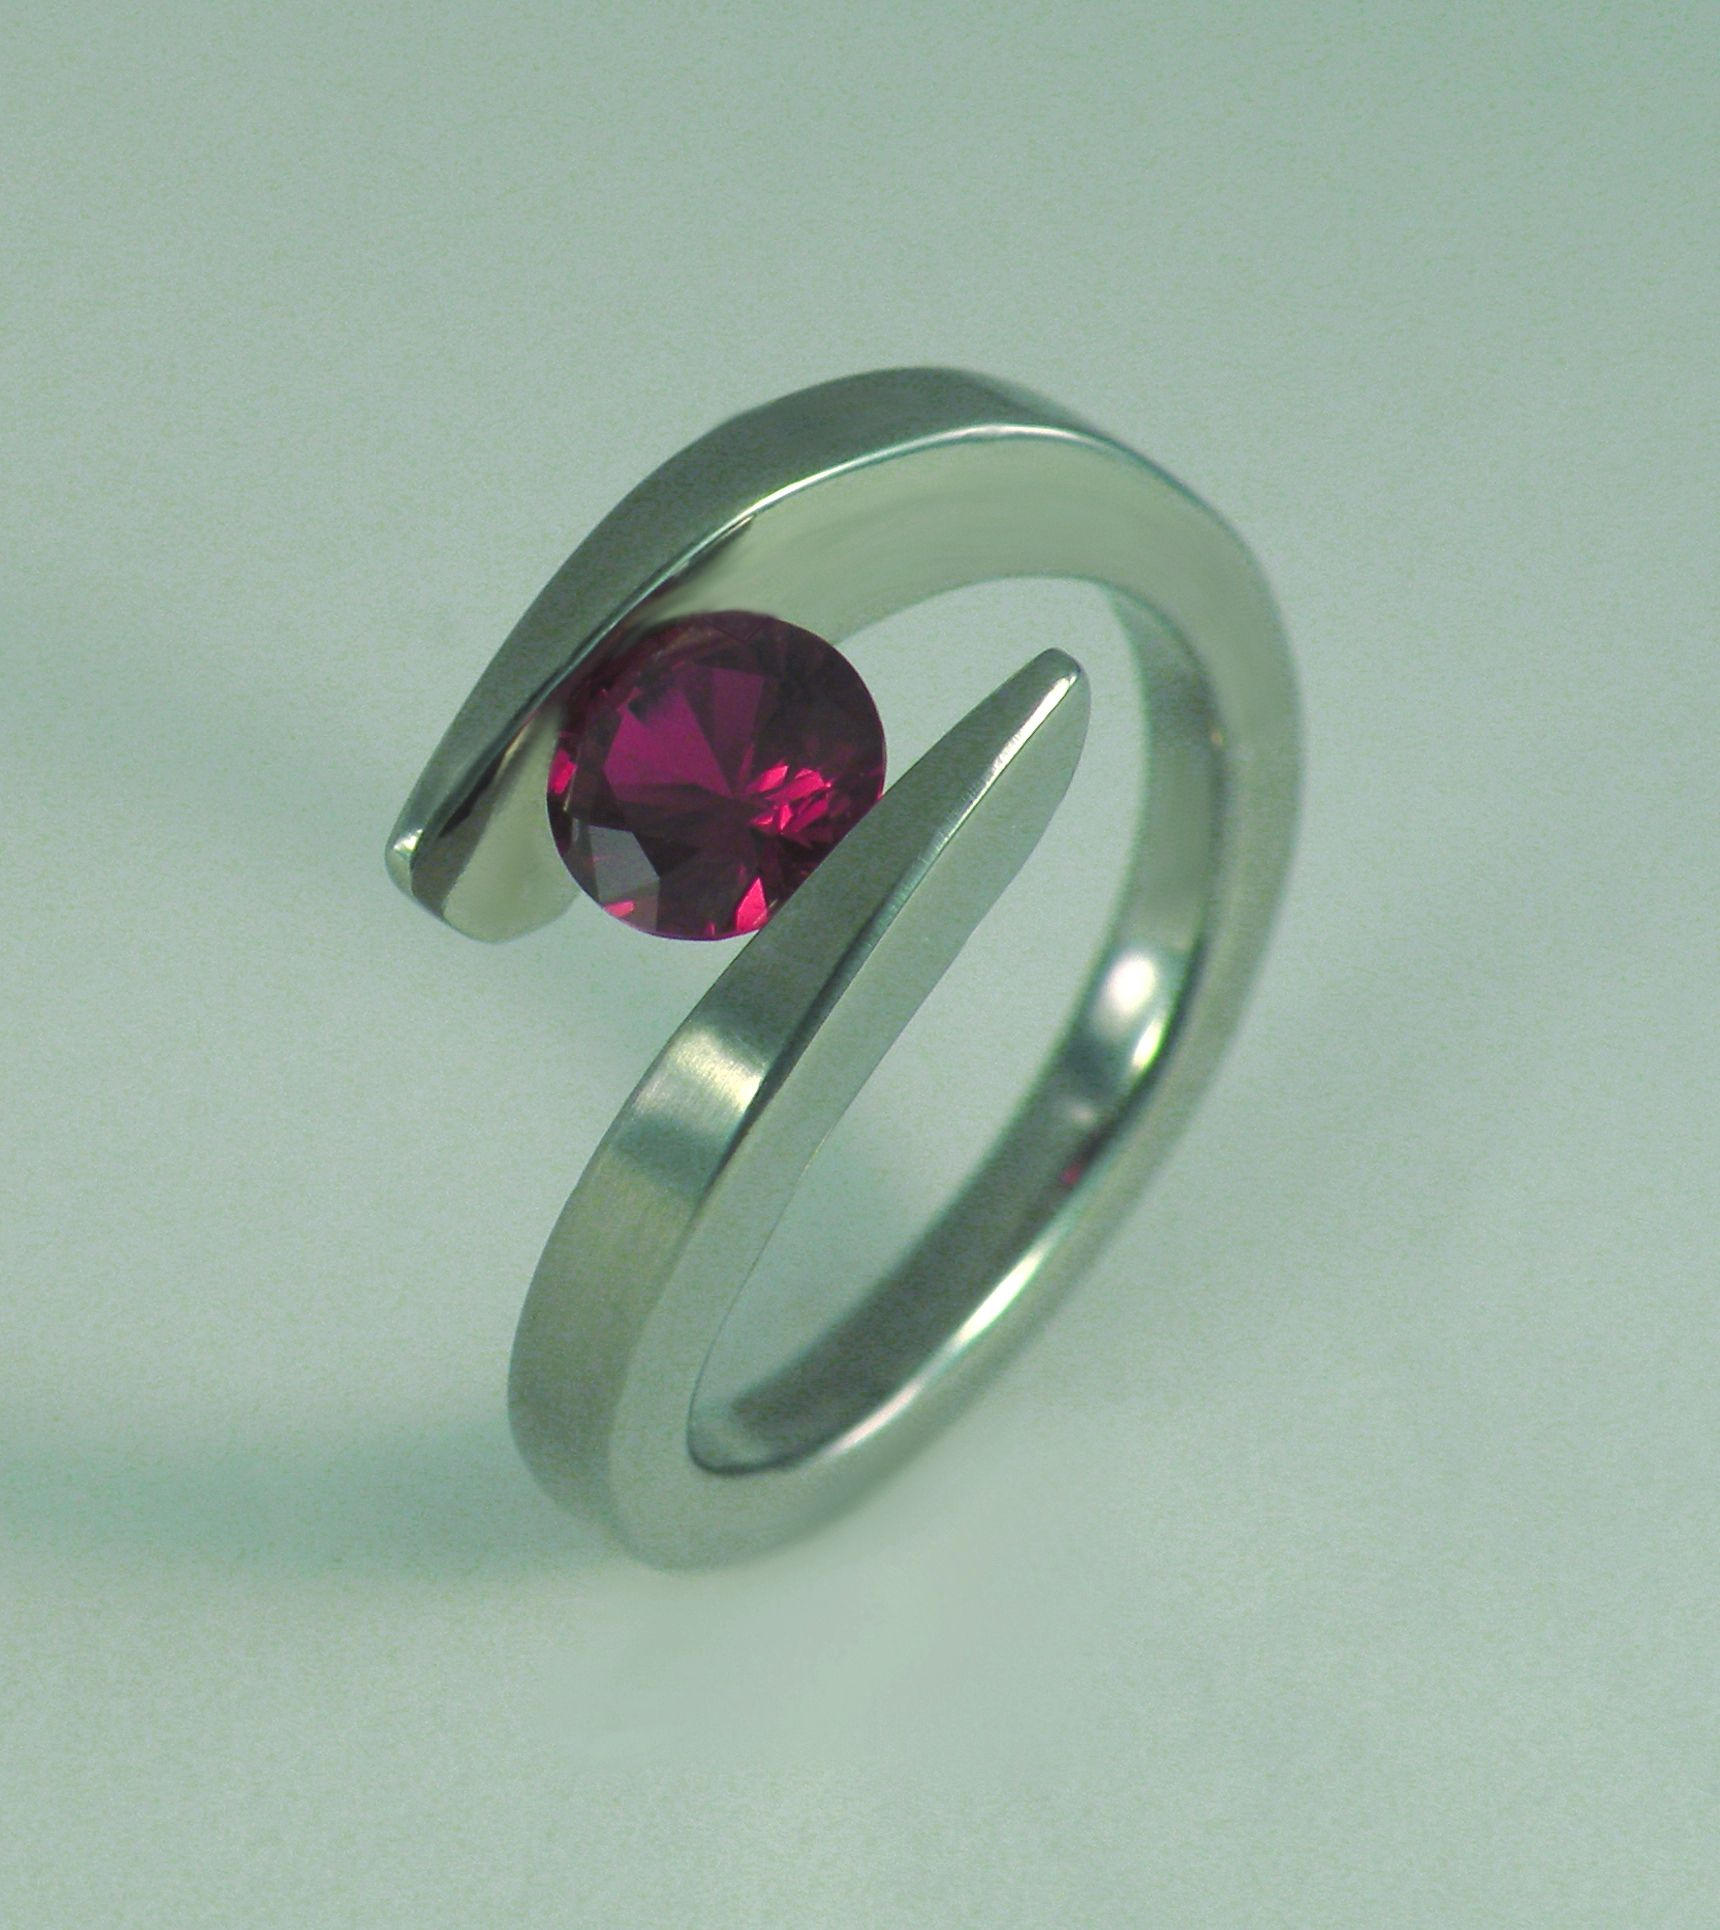 f you believe that the ruby should be the focus of your ring, then this is the ring for you. The Pointed Twist of Fate ruby Ring is one of the newest variations of my very popular design, The Twist of Fate Ring. The ring coils around the finger, overlapping in the front, and securely [...]